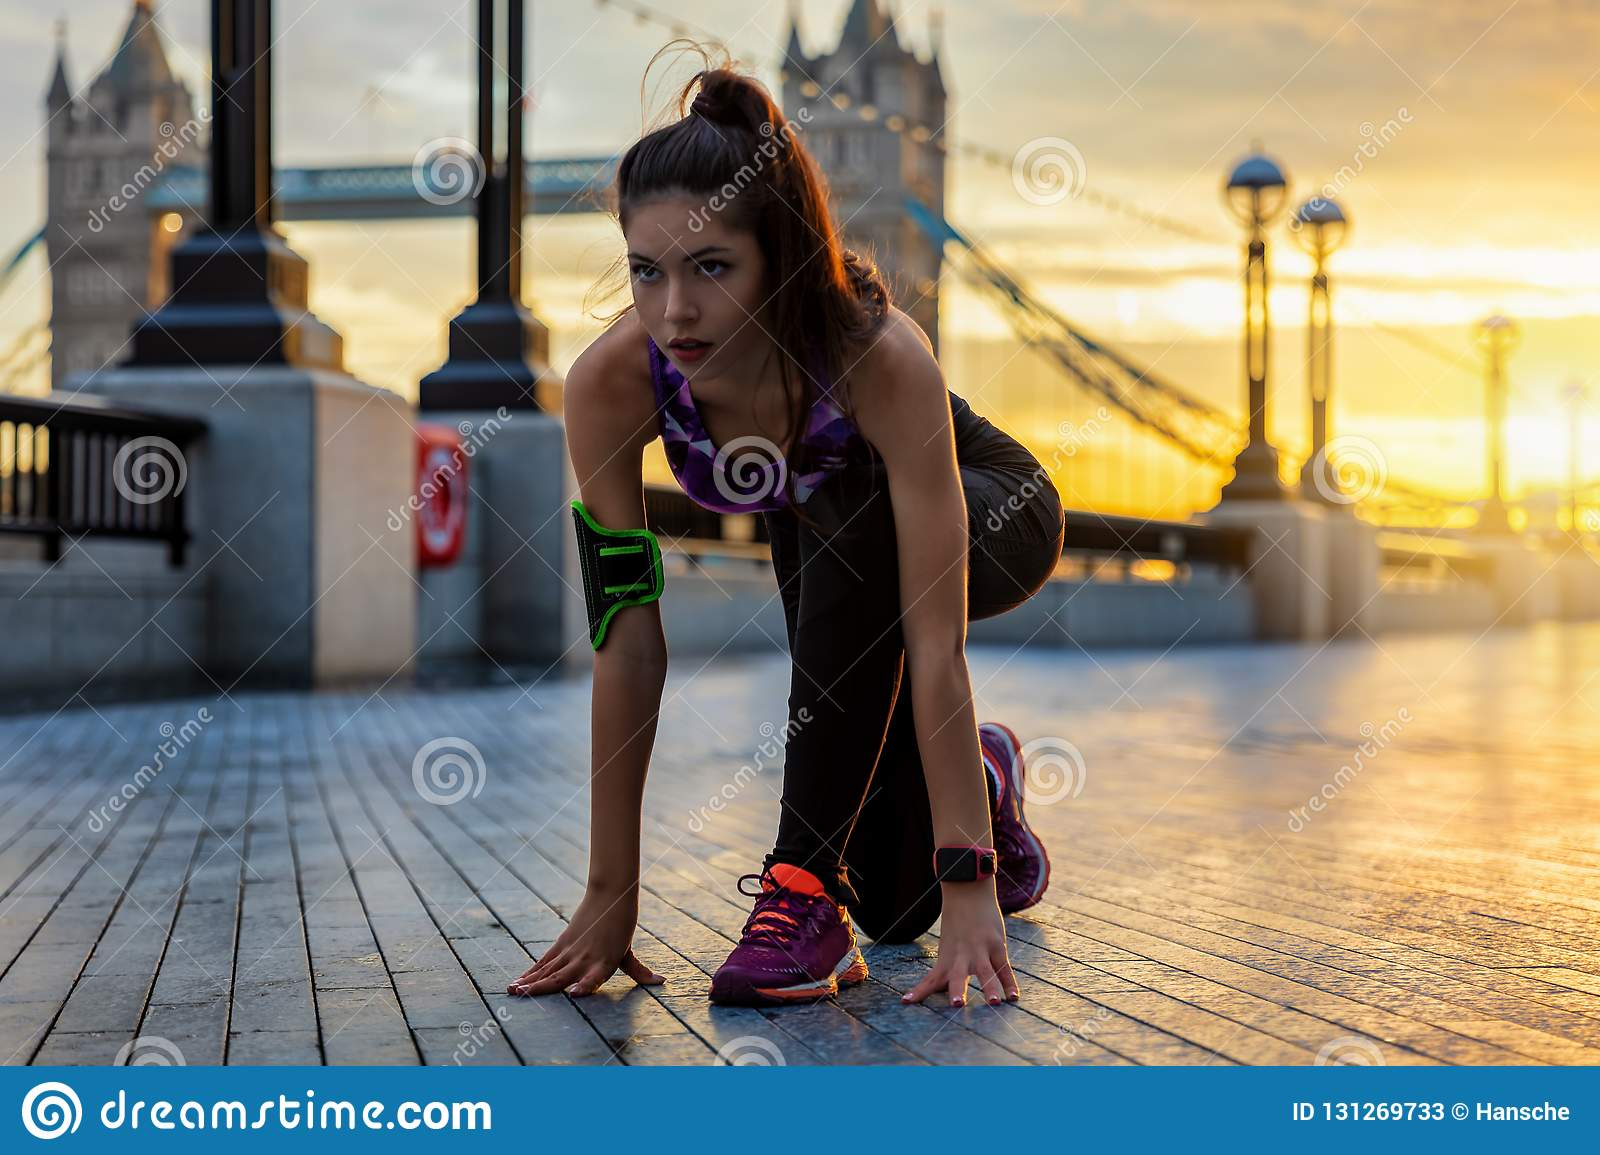 Female athlete ready to do her workout in an urban city